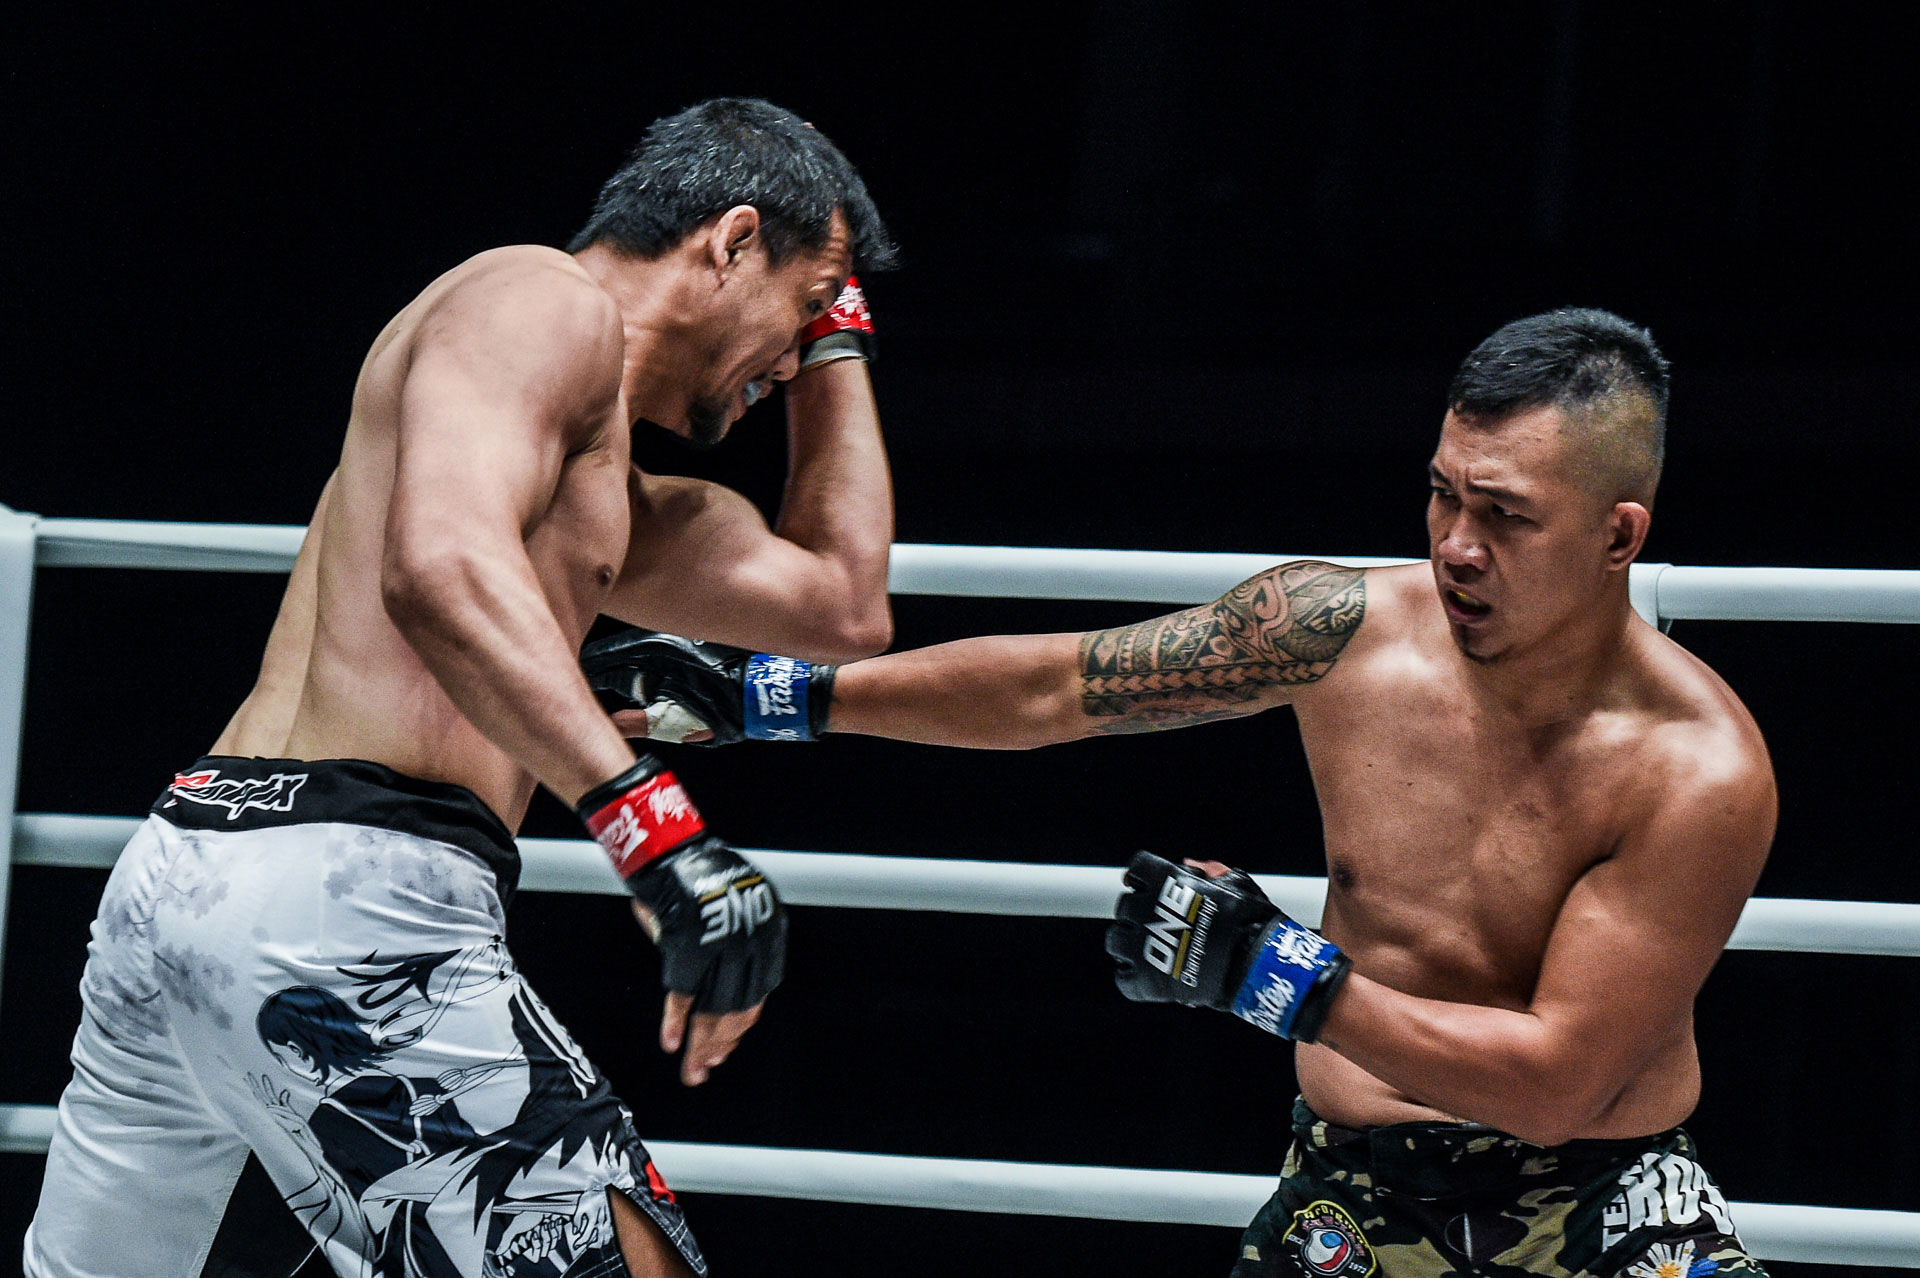 Tiebreaker Times Roel Rosauro looks to build on big ONE: A New Tomorrow win Mixed Martial Arts News ONE Championship  Yaw-Yan Ardigma Cebu Roel Rosauro ONE: A New Tomorrow